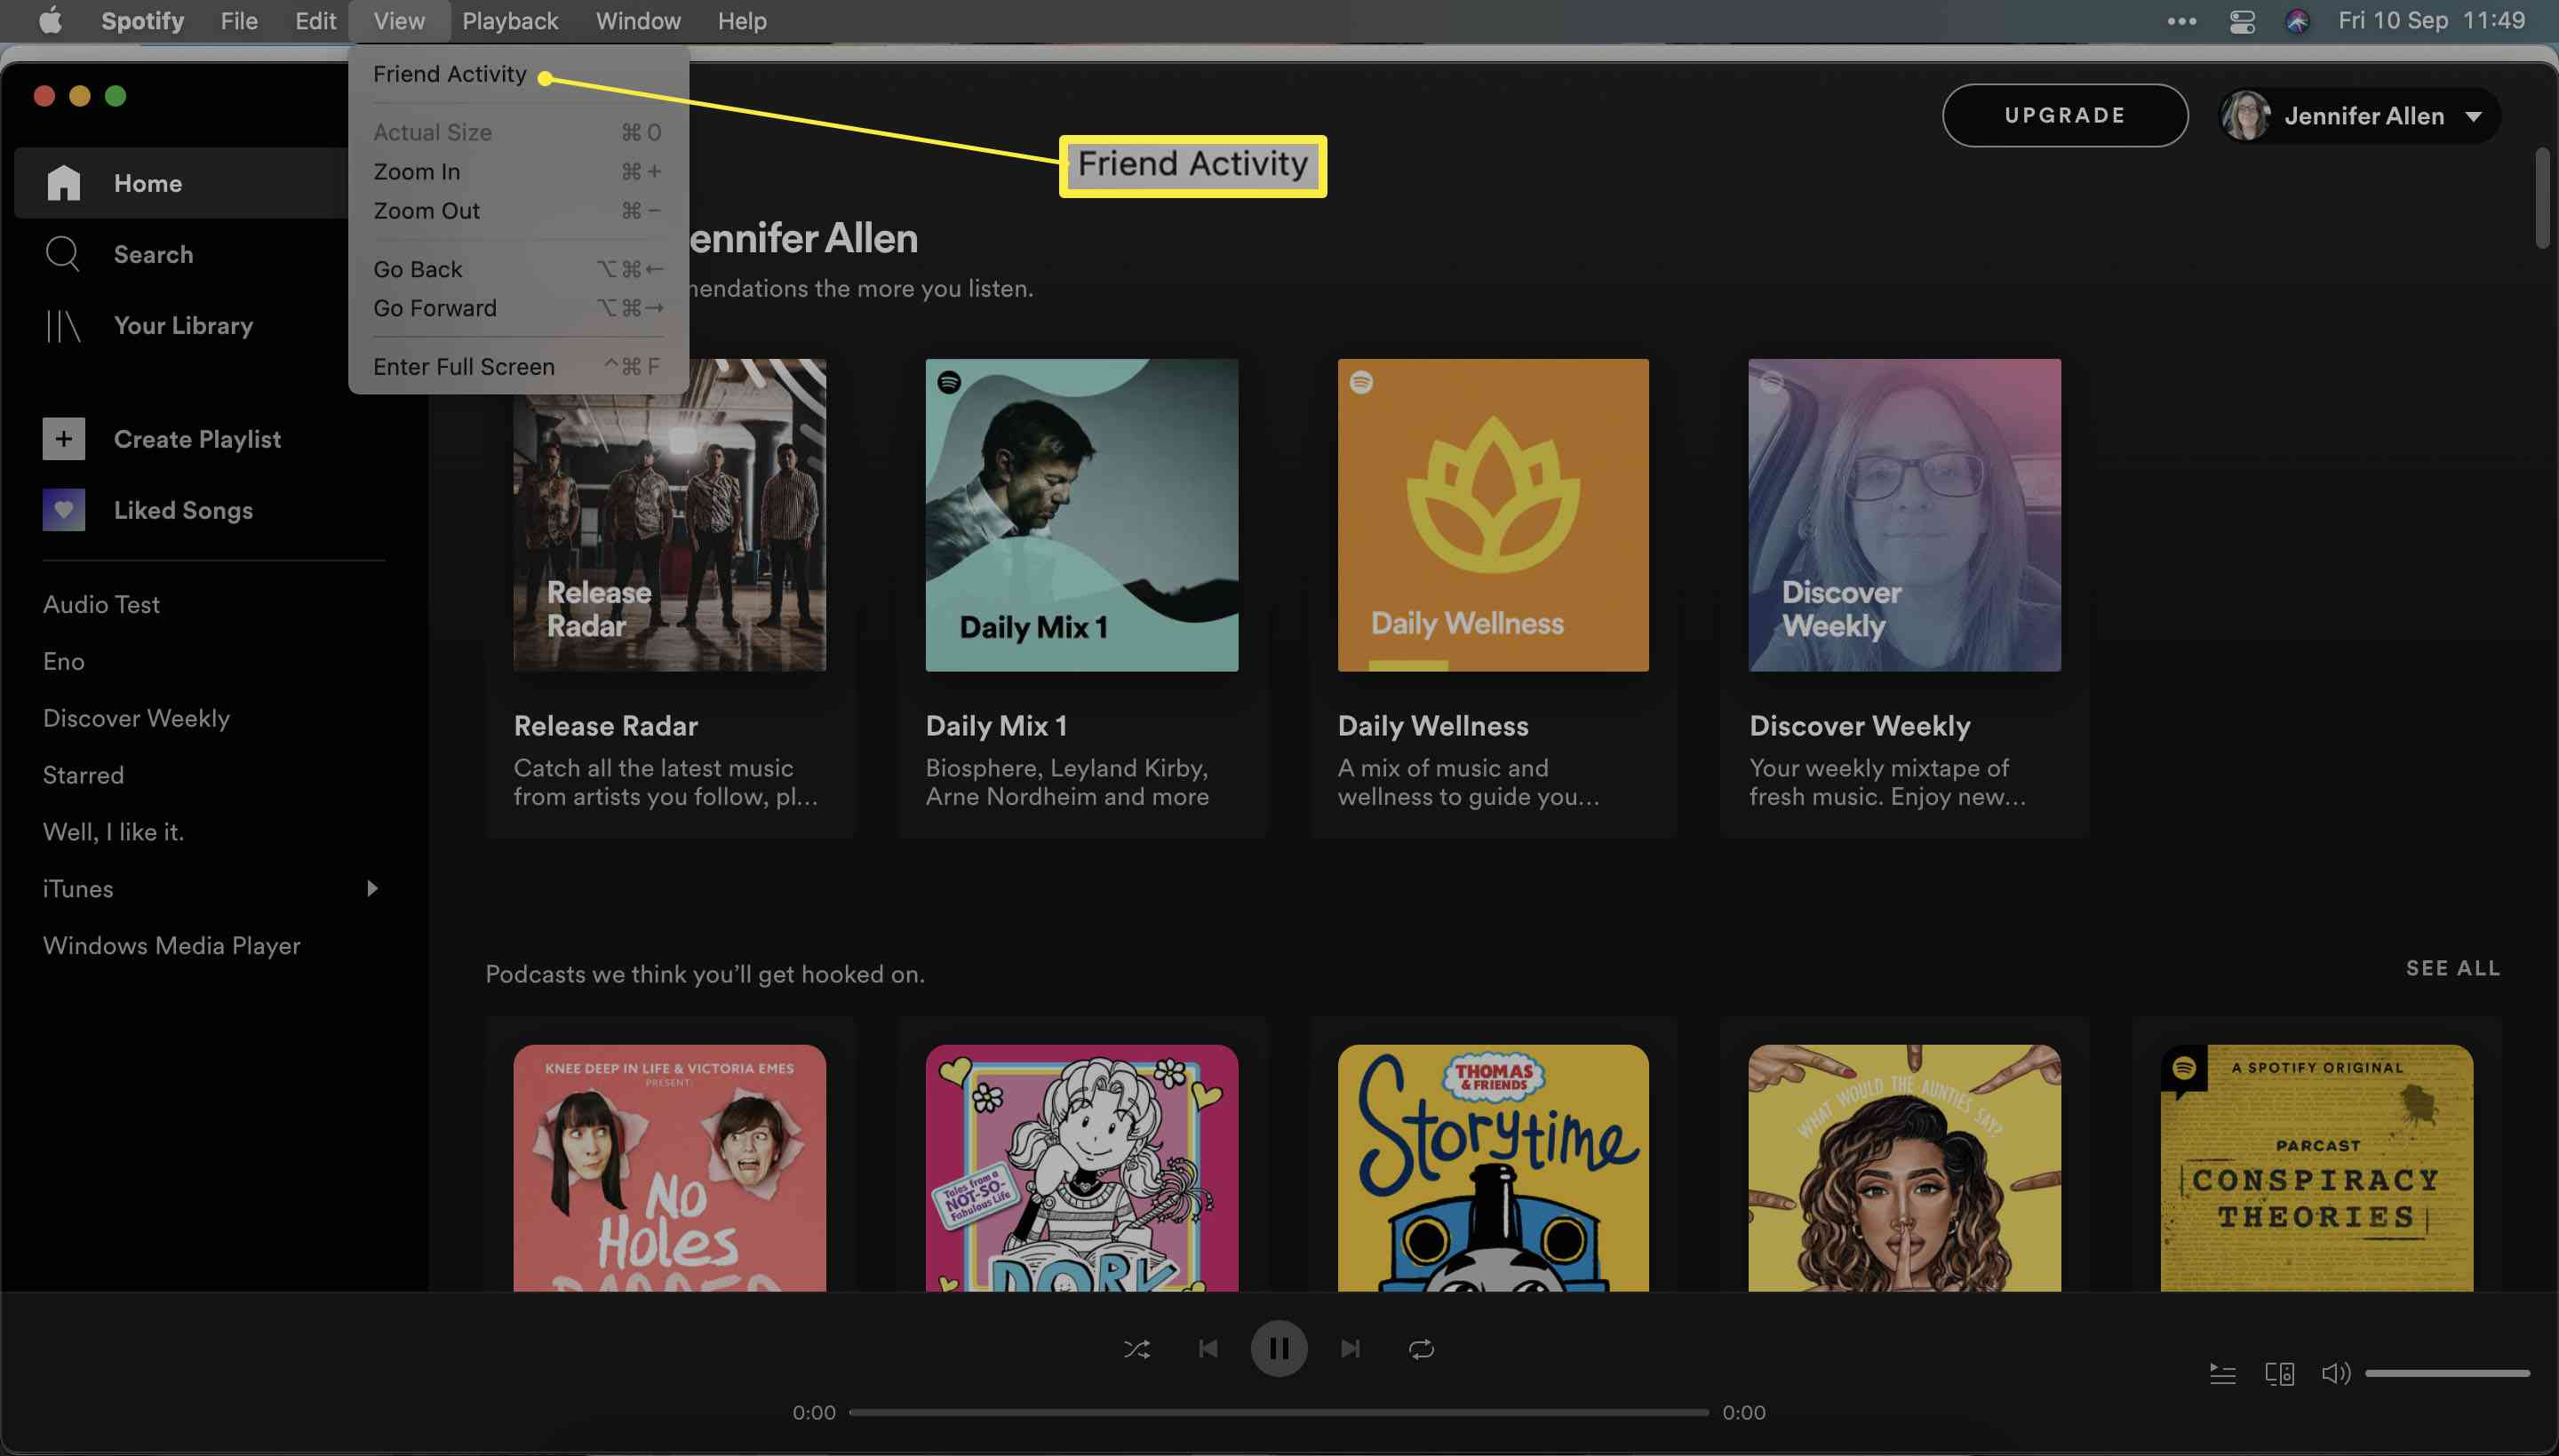 Spotify with View and Friend Activity highlighted